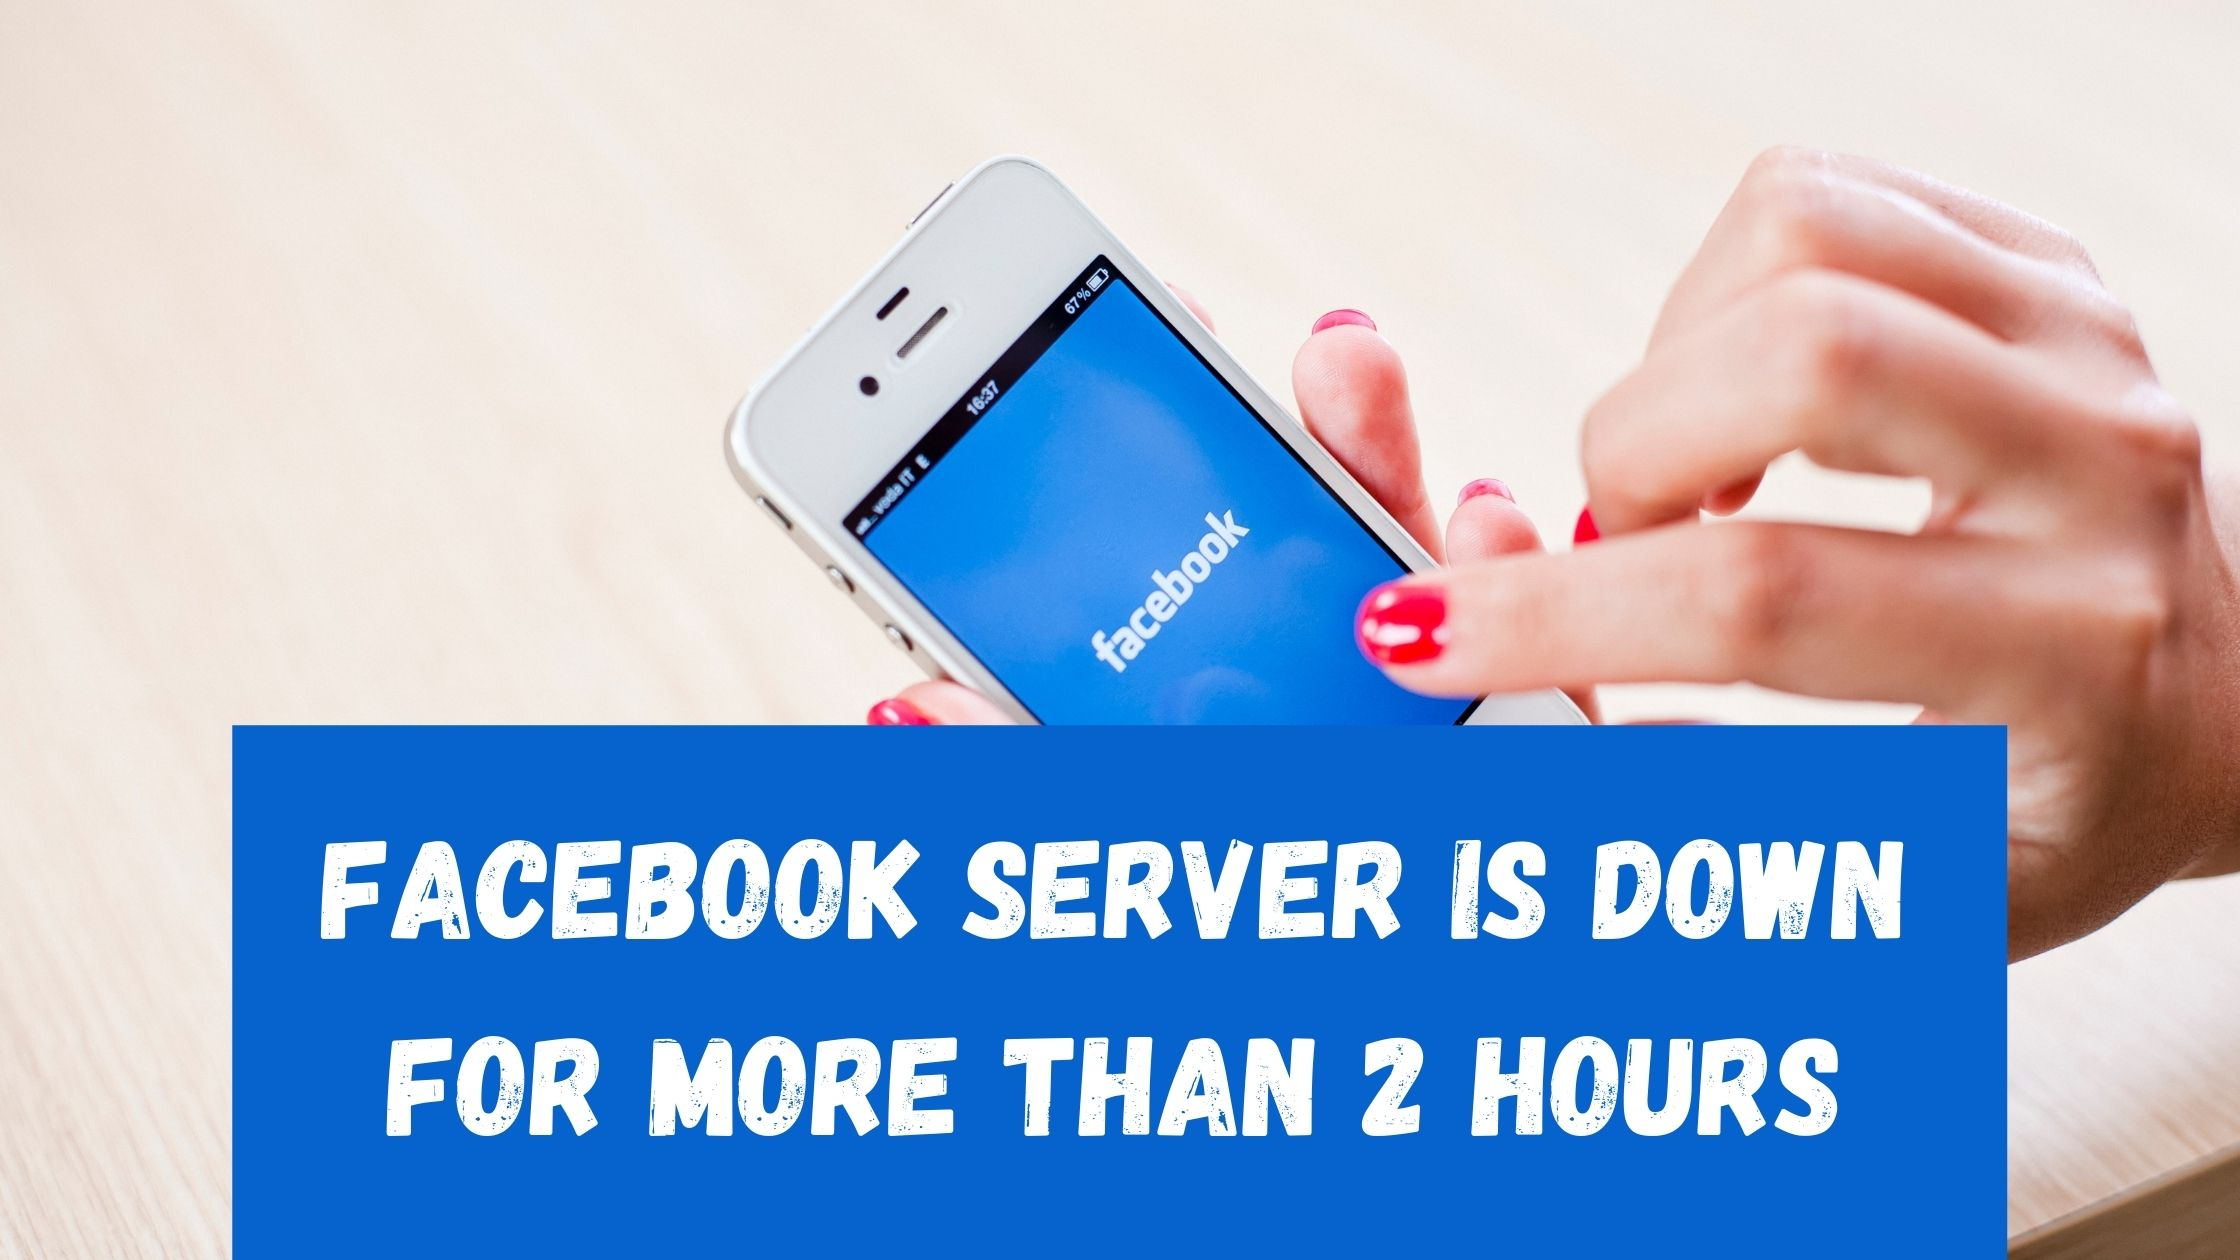 Facebook server is down for more than 2 hours